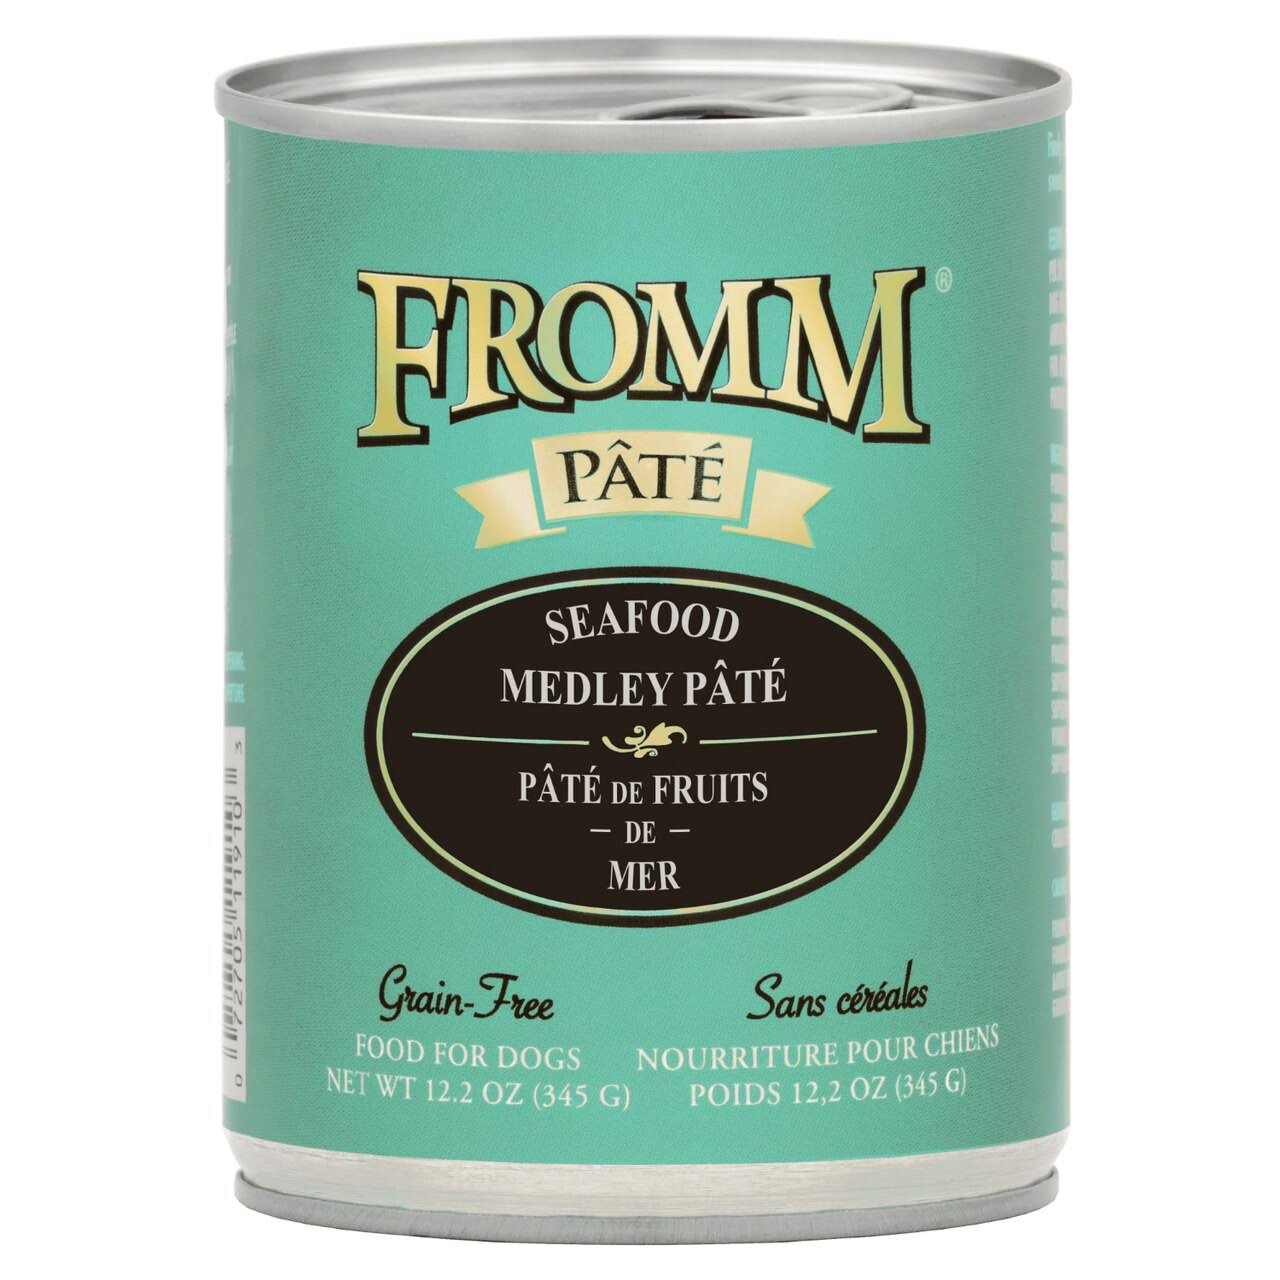 Fromm Seafood Medley Pate Canned Dog Food 12.2 oz